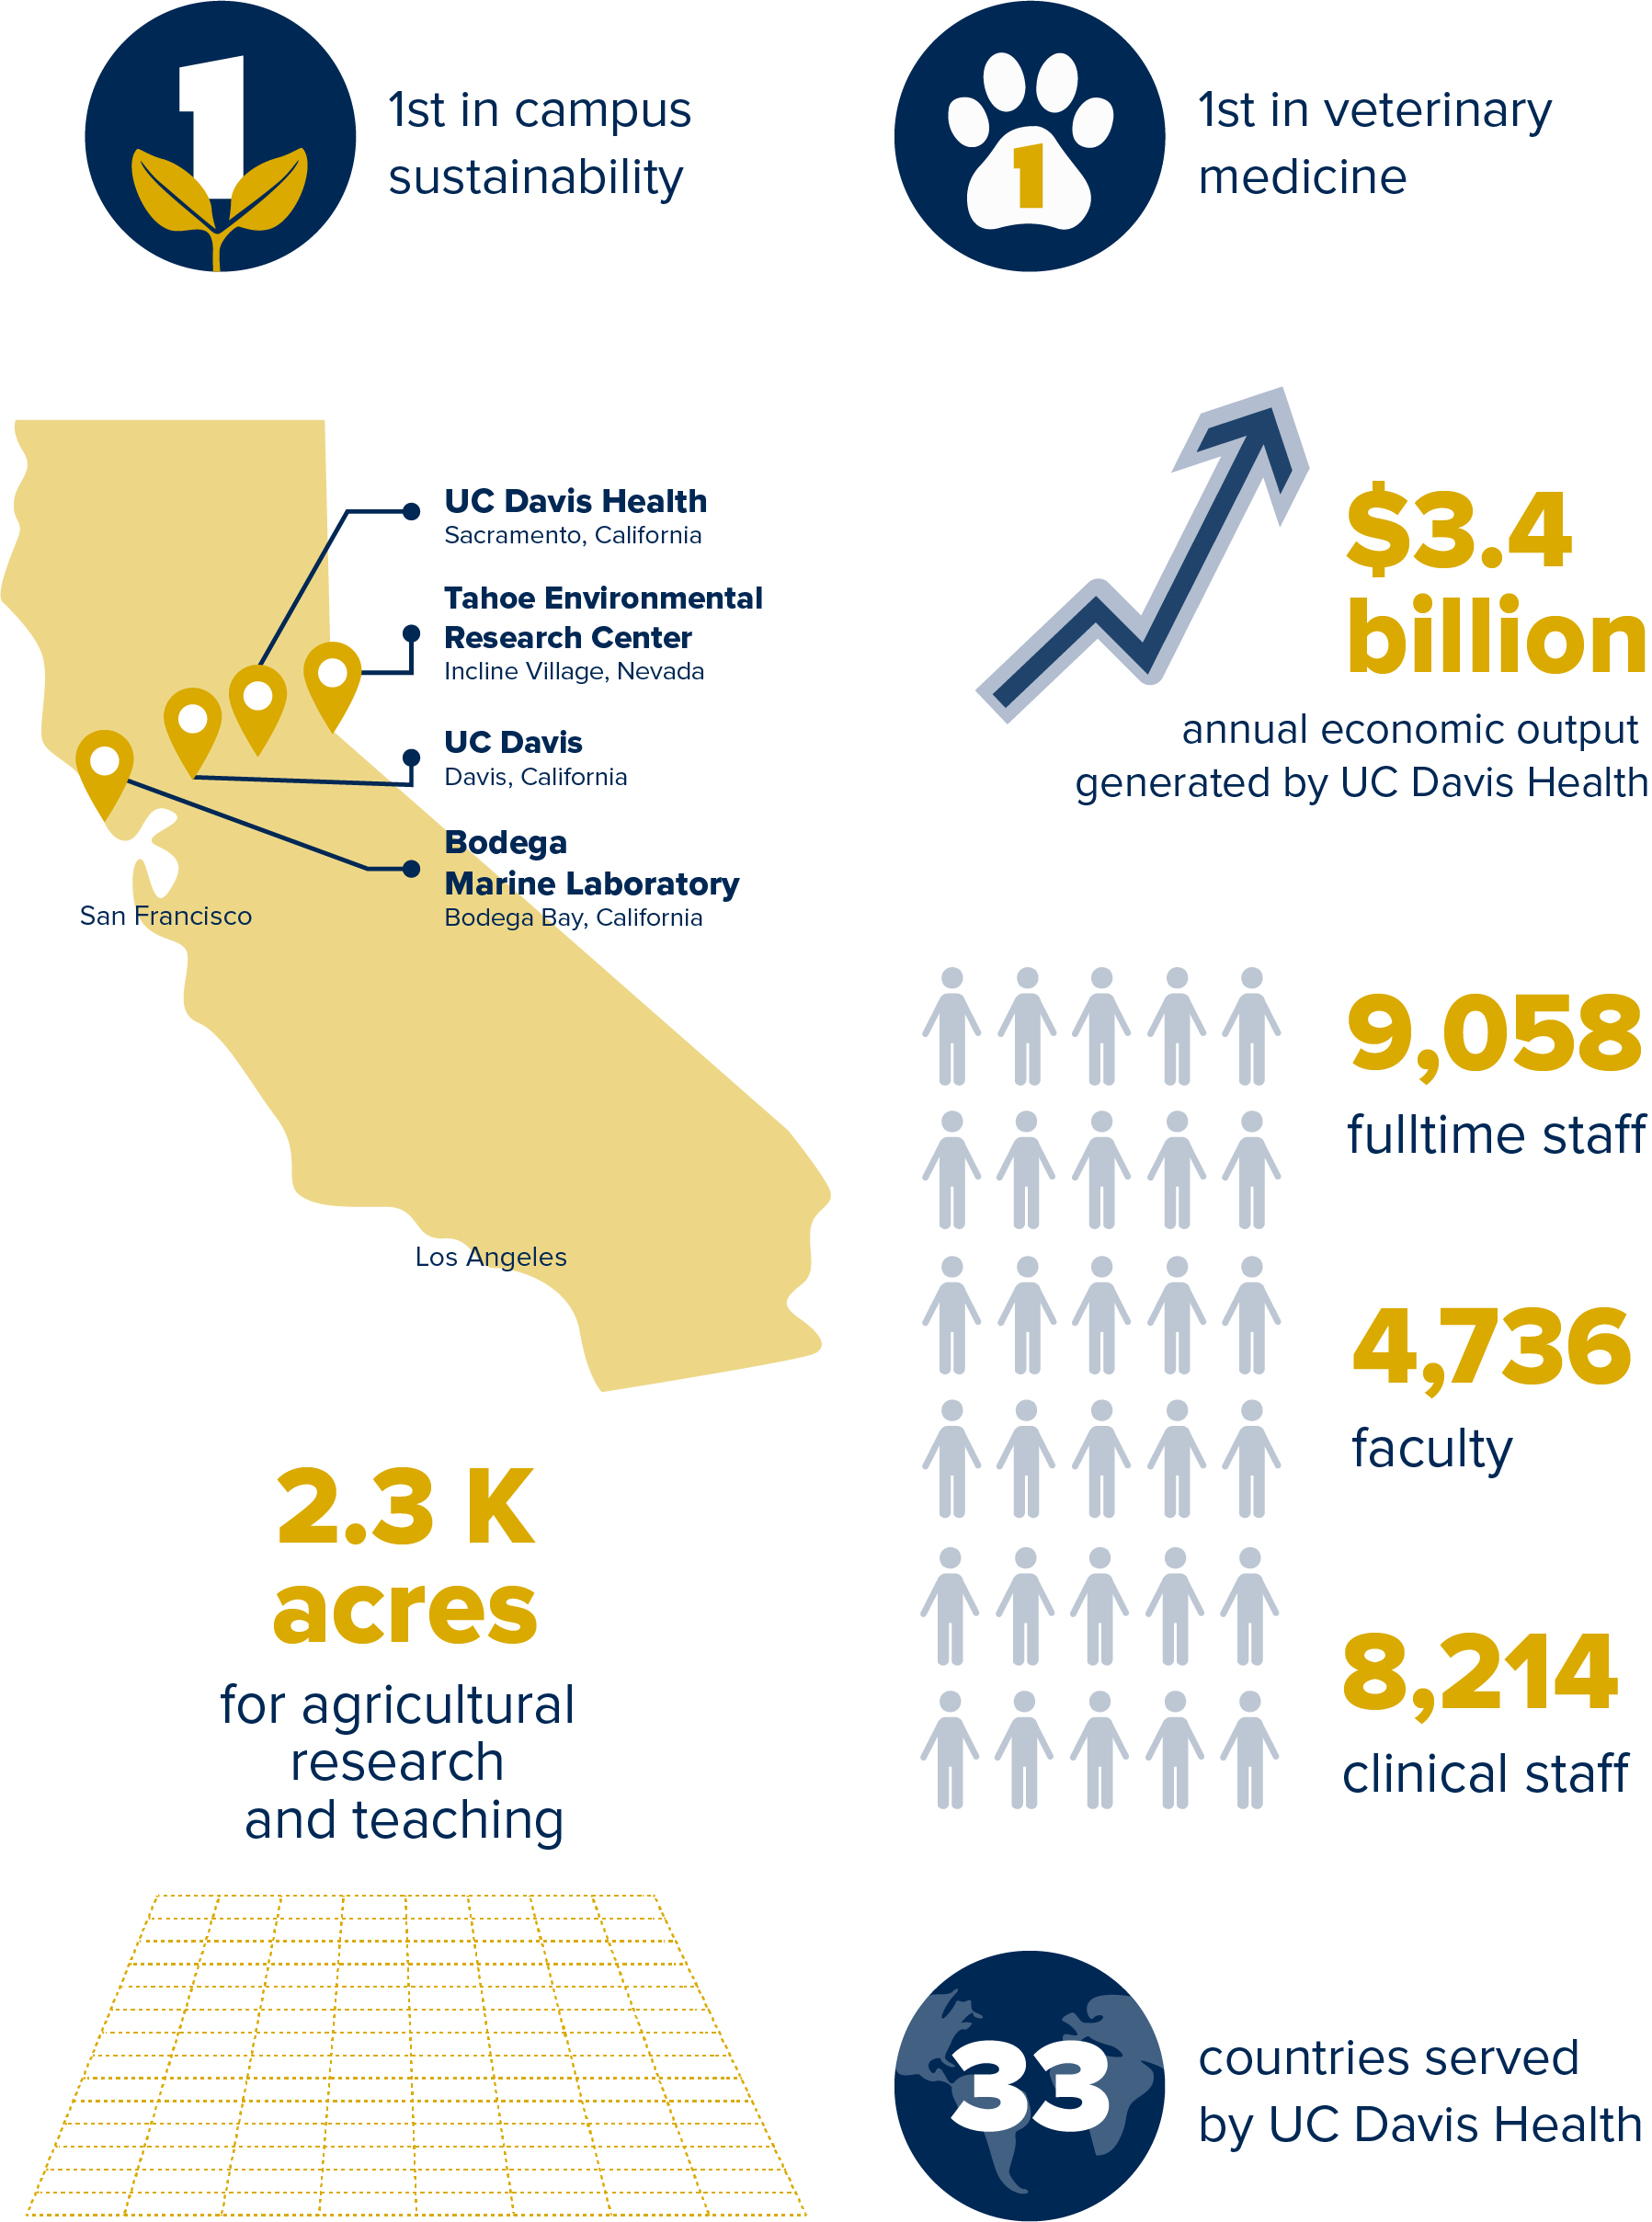 infographic of data about UC Davis and UC Davis health